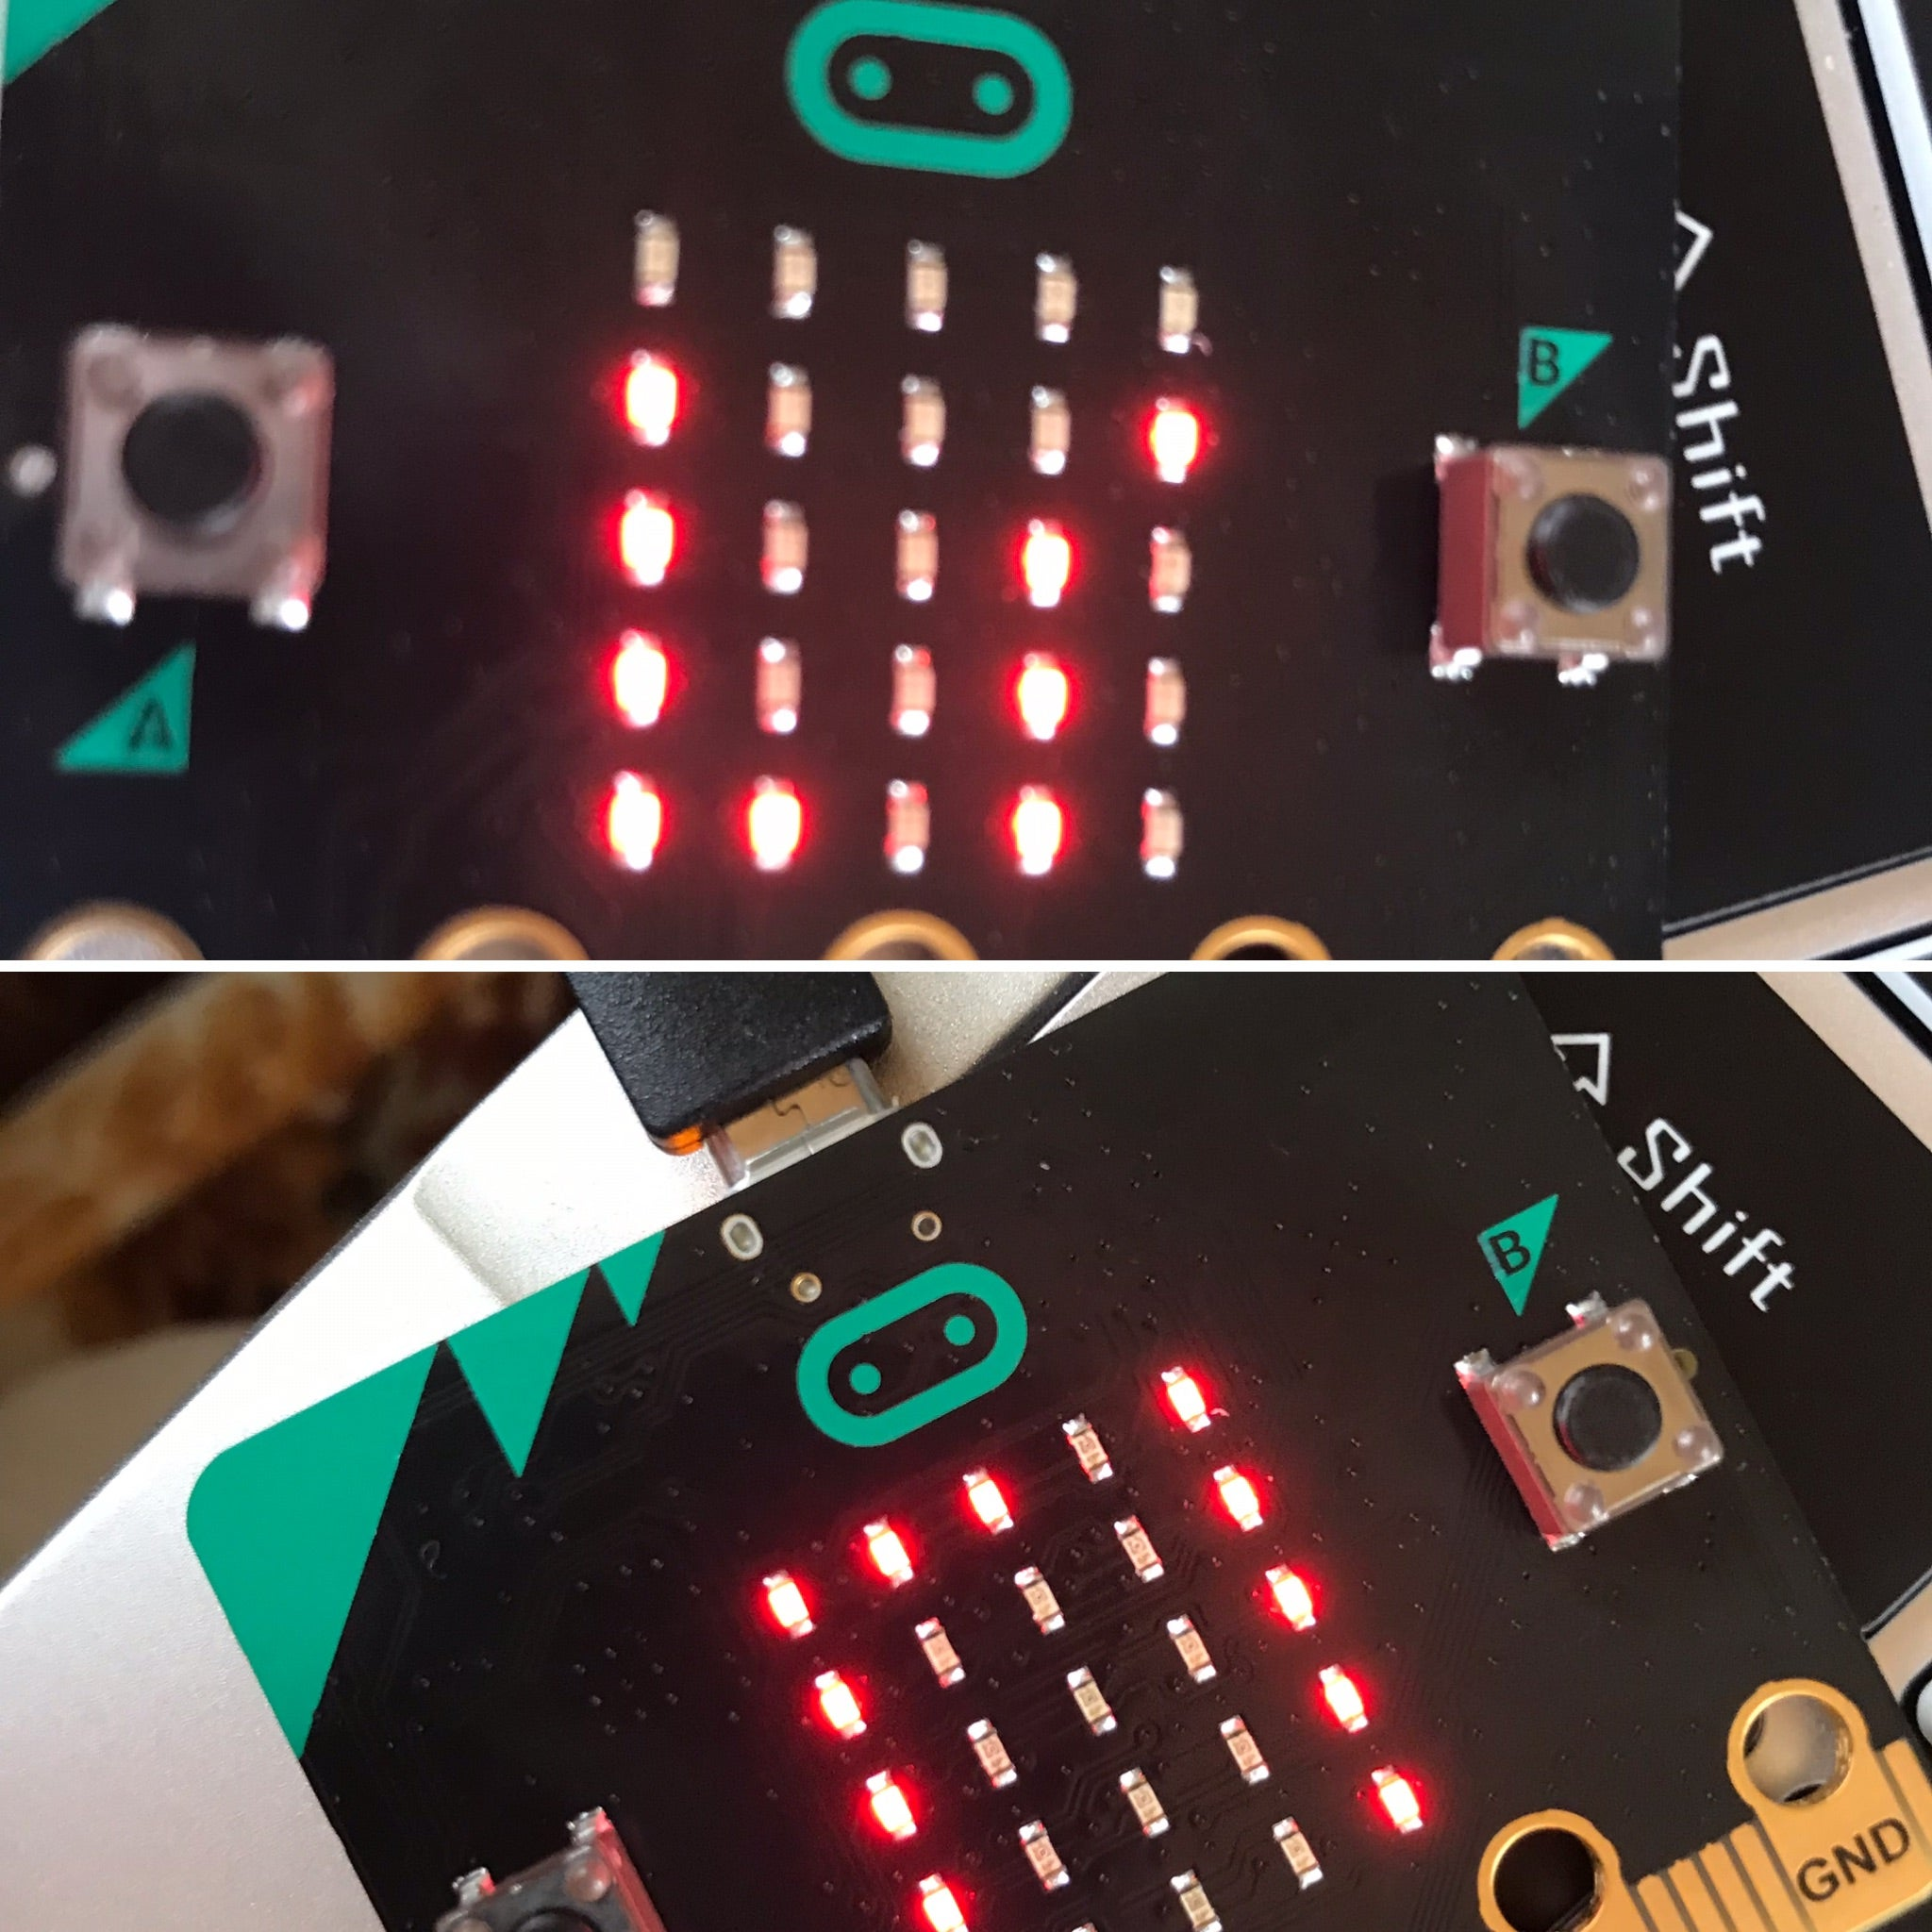 BBC Microbit board